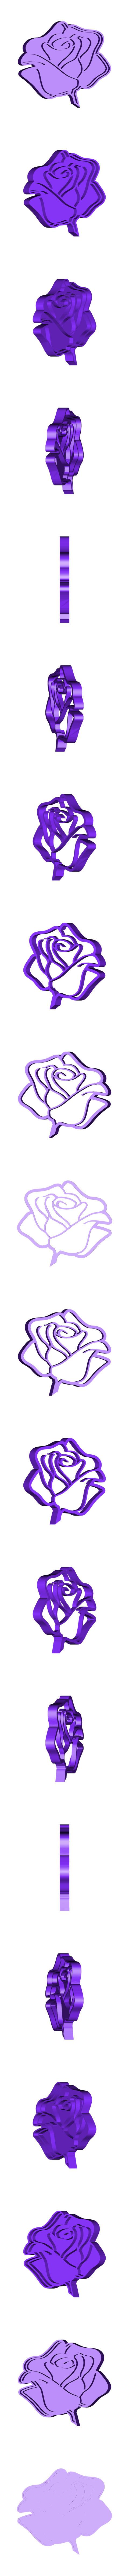 Rosa 3 - copia.stl Download STL file Rose 3 cookie cutter • 3D printable template, osval74